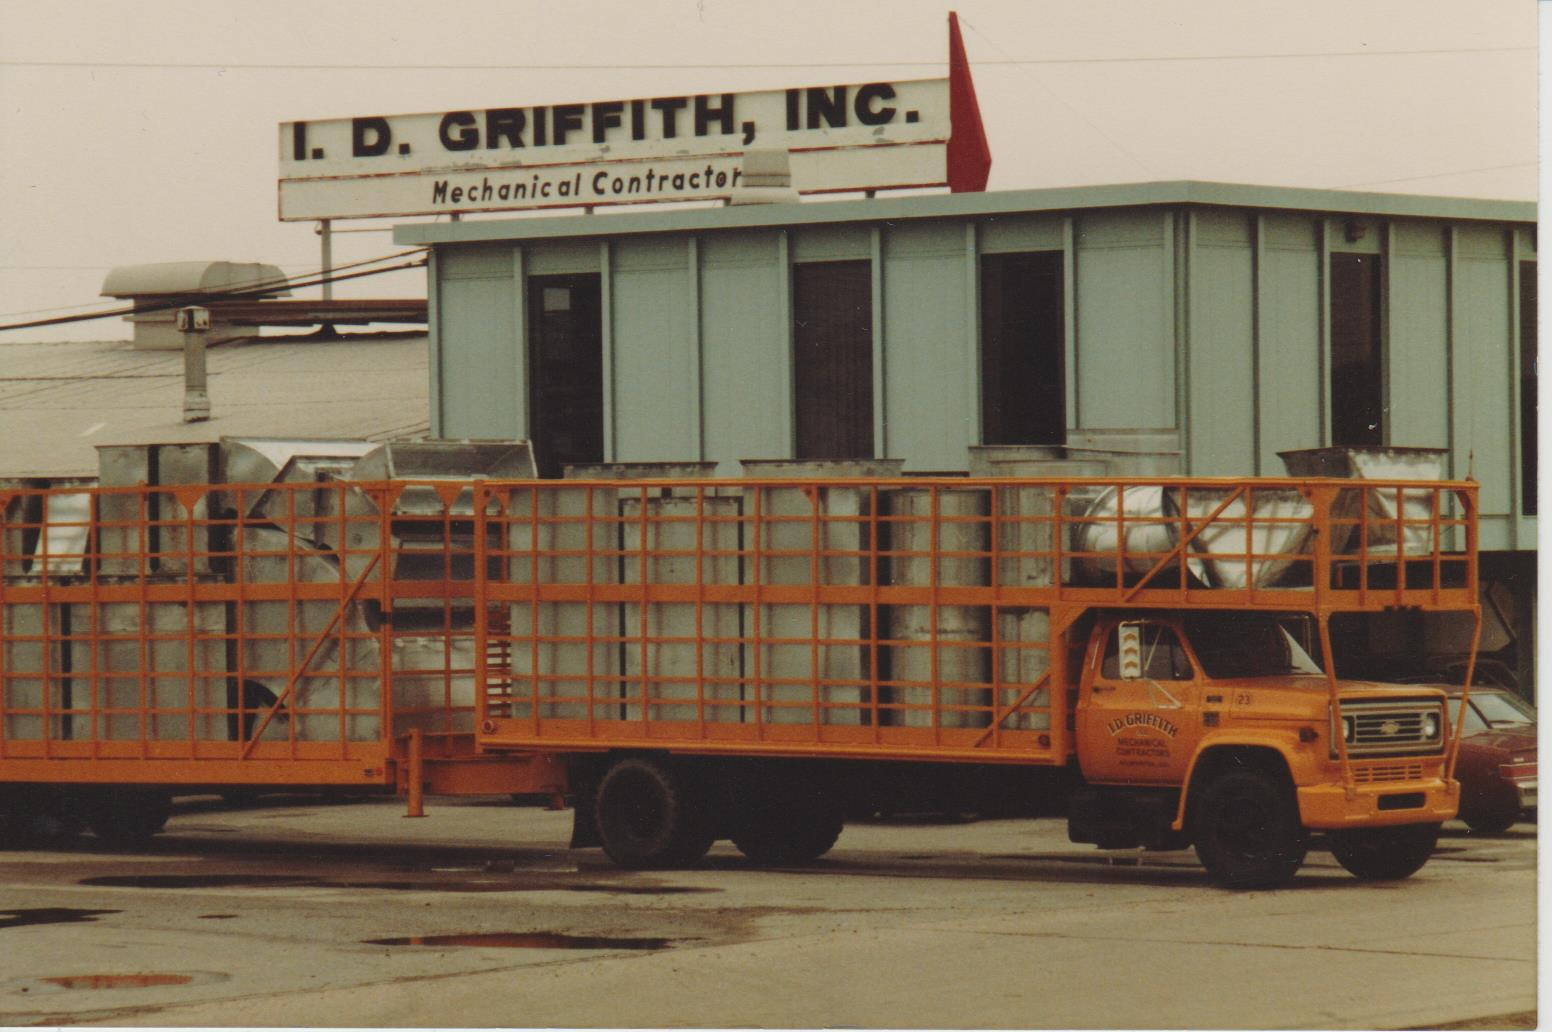 One of the Company's First Trucks